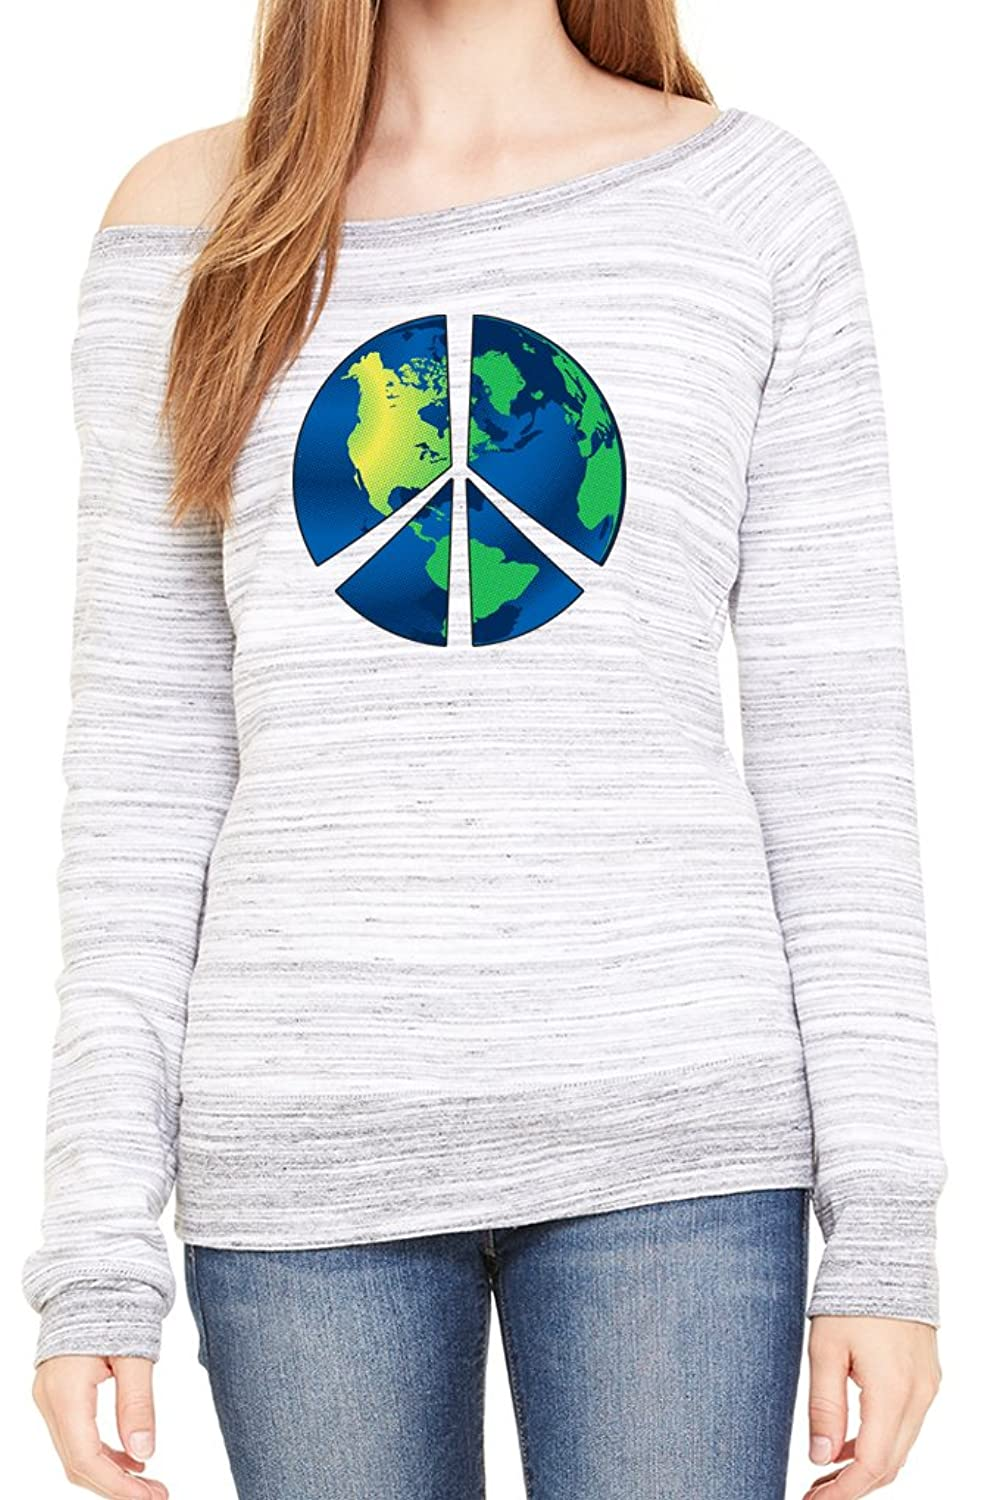 Yoga Clothing For You Ladies Blue Earth Wide Neck Sweatshirt